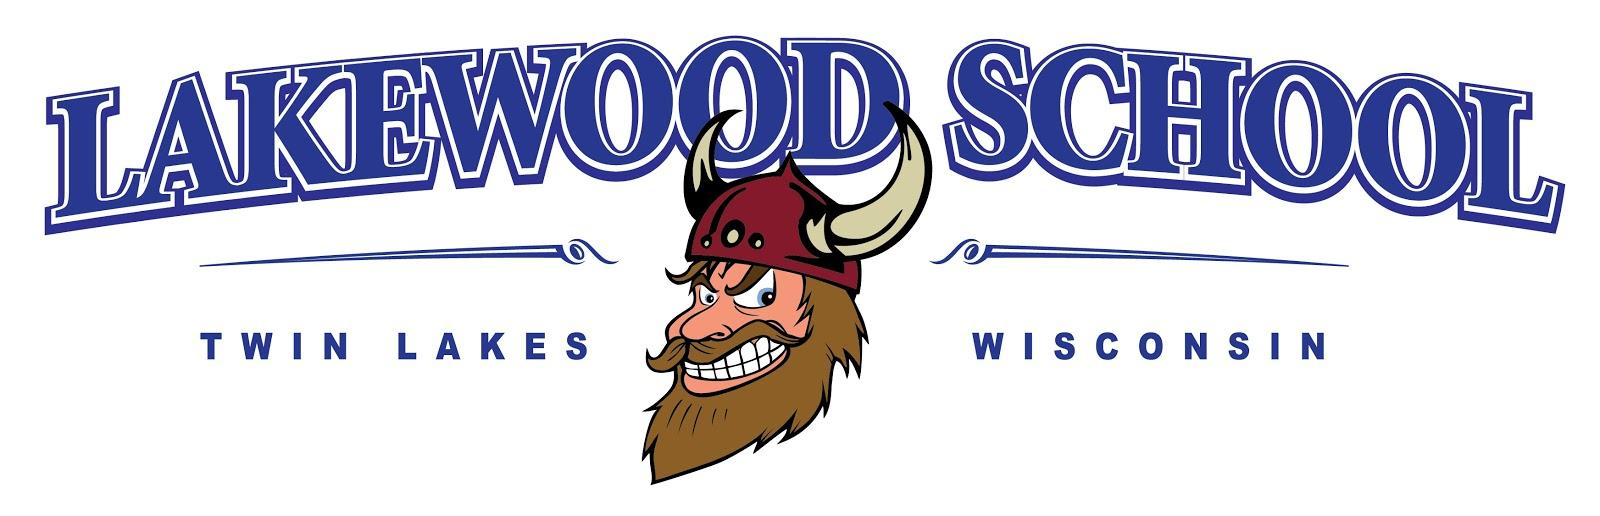 Lakewood_Blue Logo Banner_Color.JPG